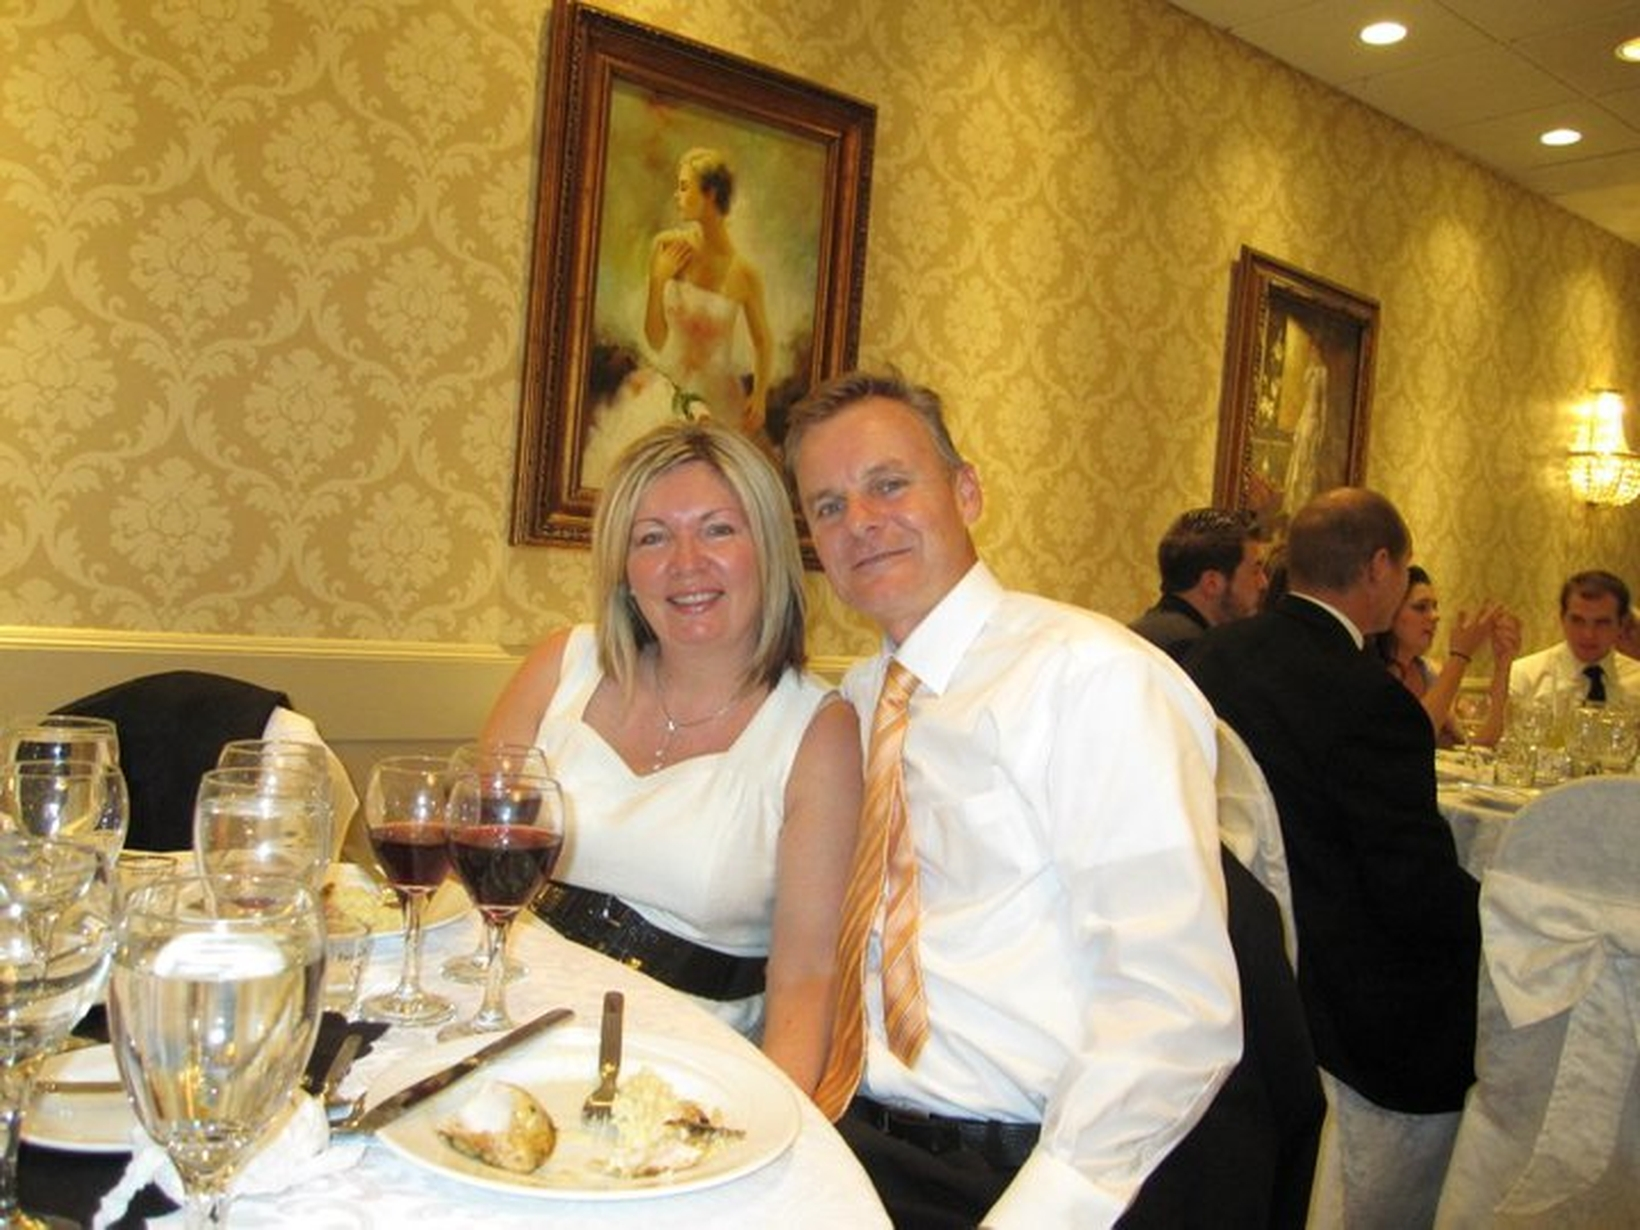 Linda & Mark from Windsor, Ontario, Canada